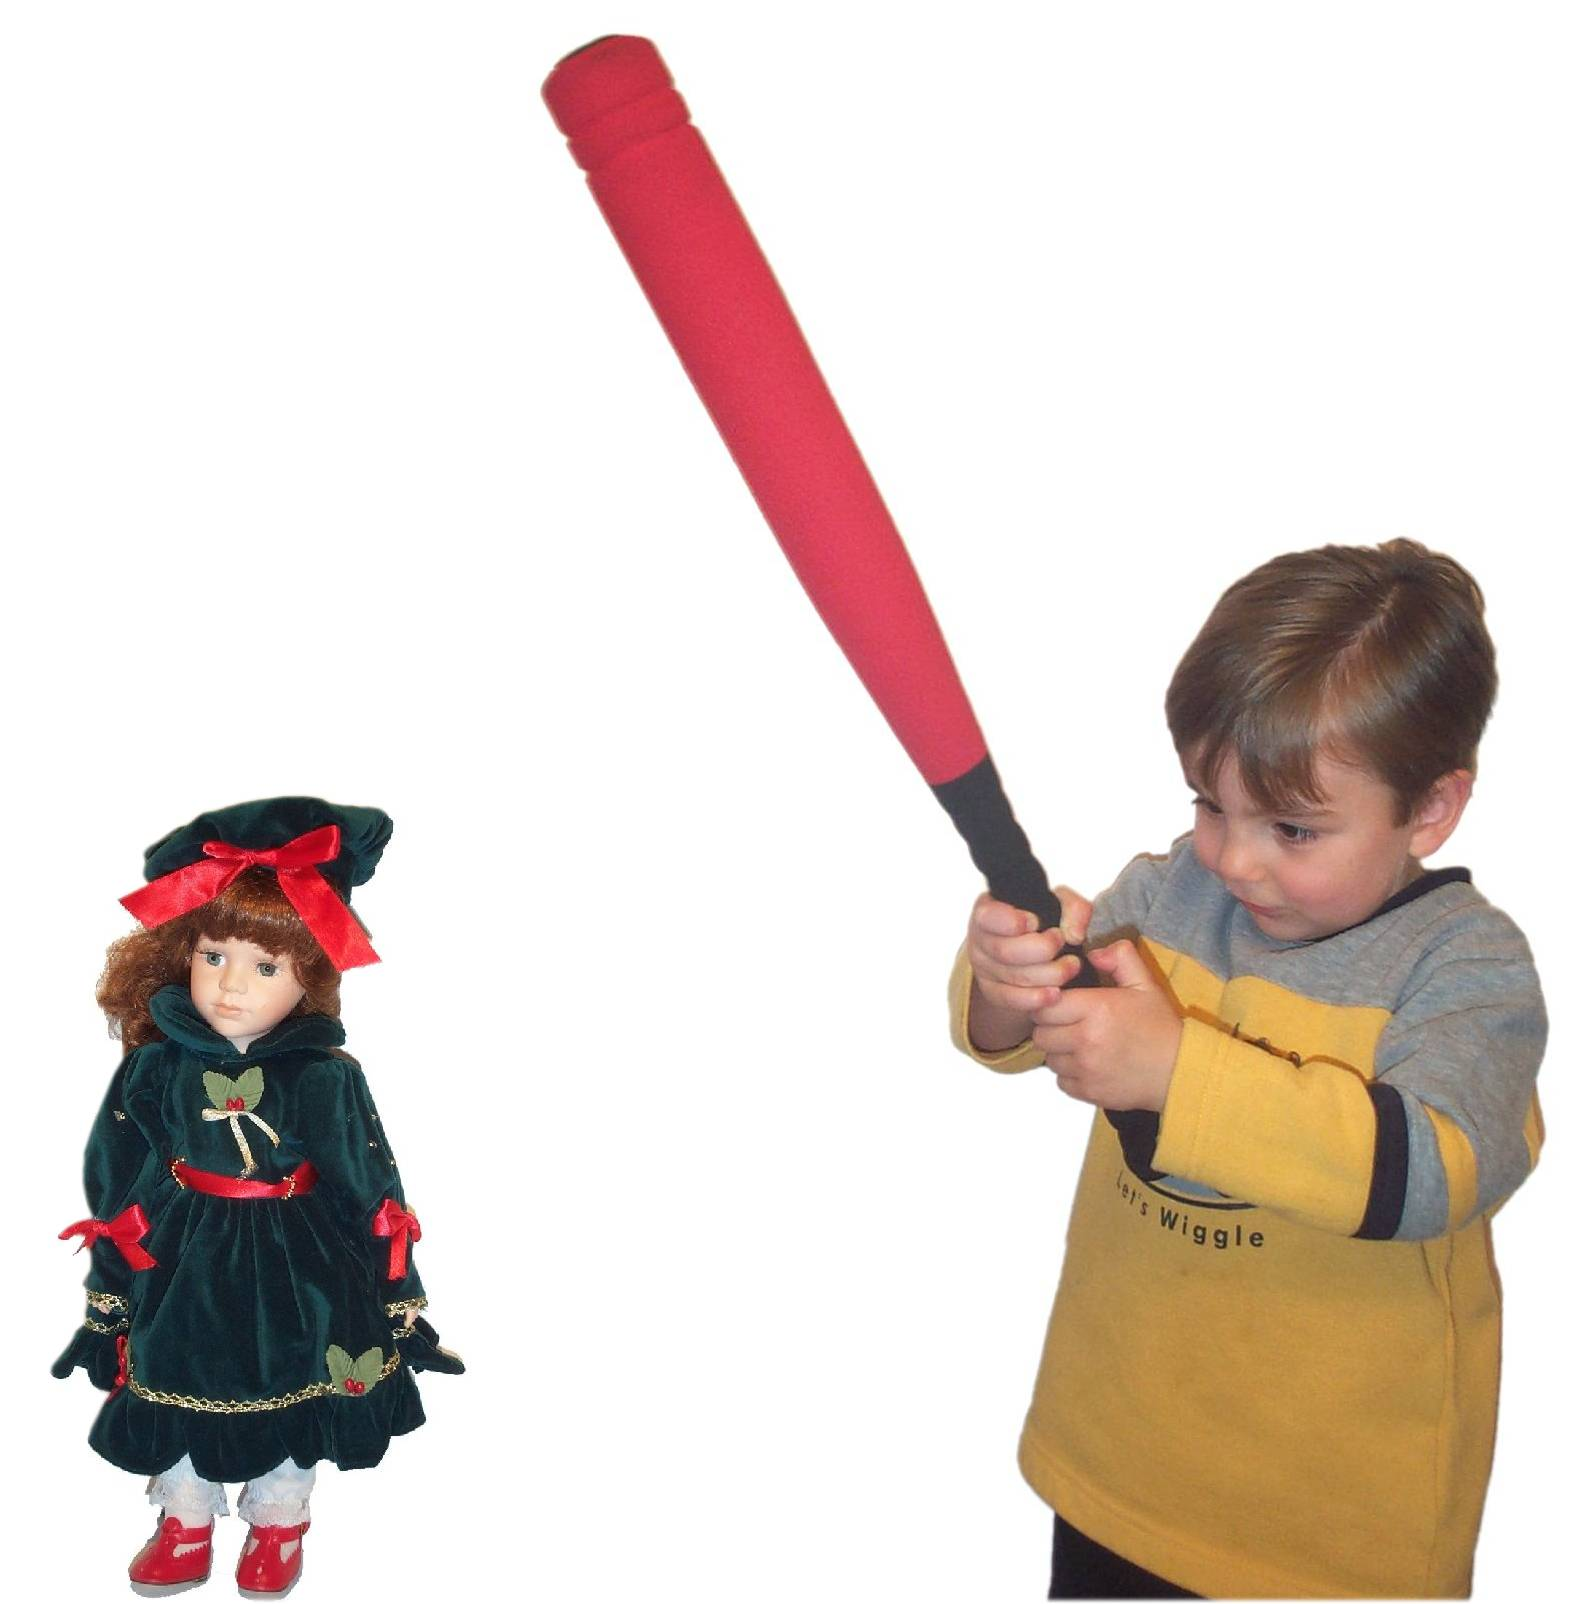 Boy hitting doll.jpg